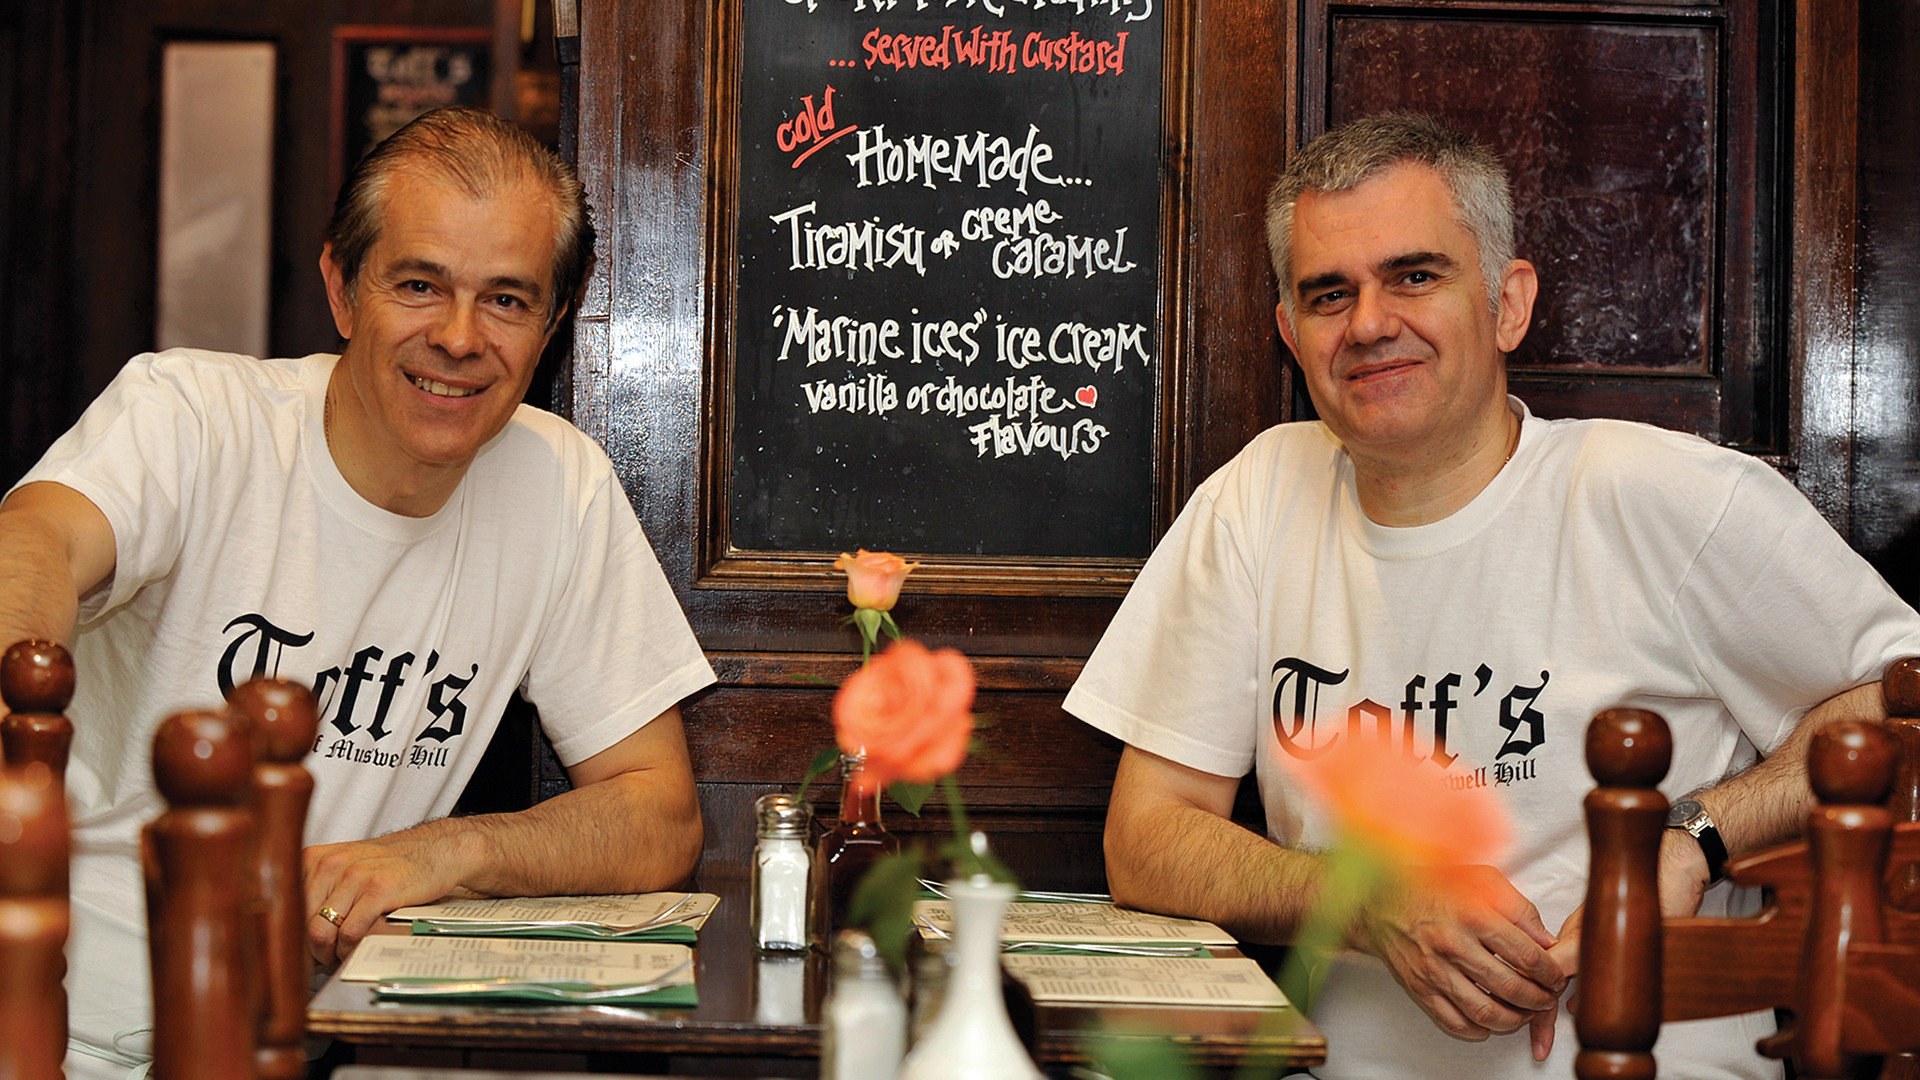 London's best fish and chips – Toff's